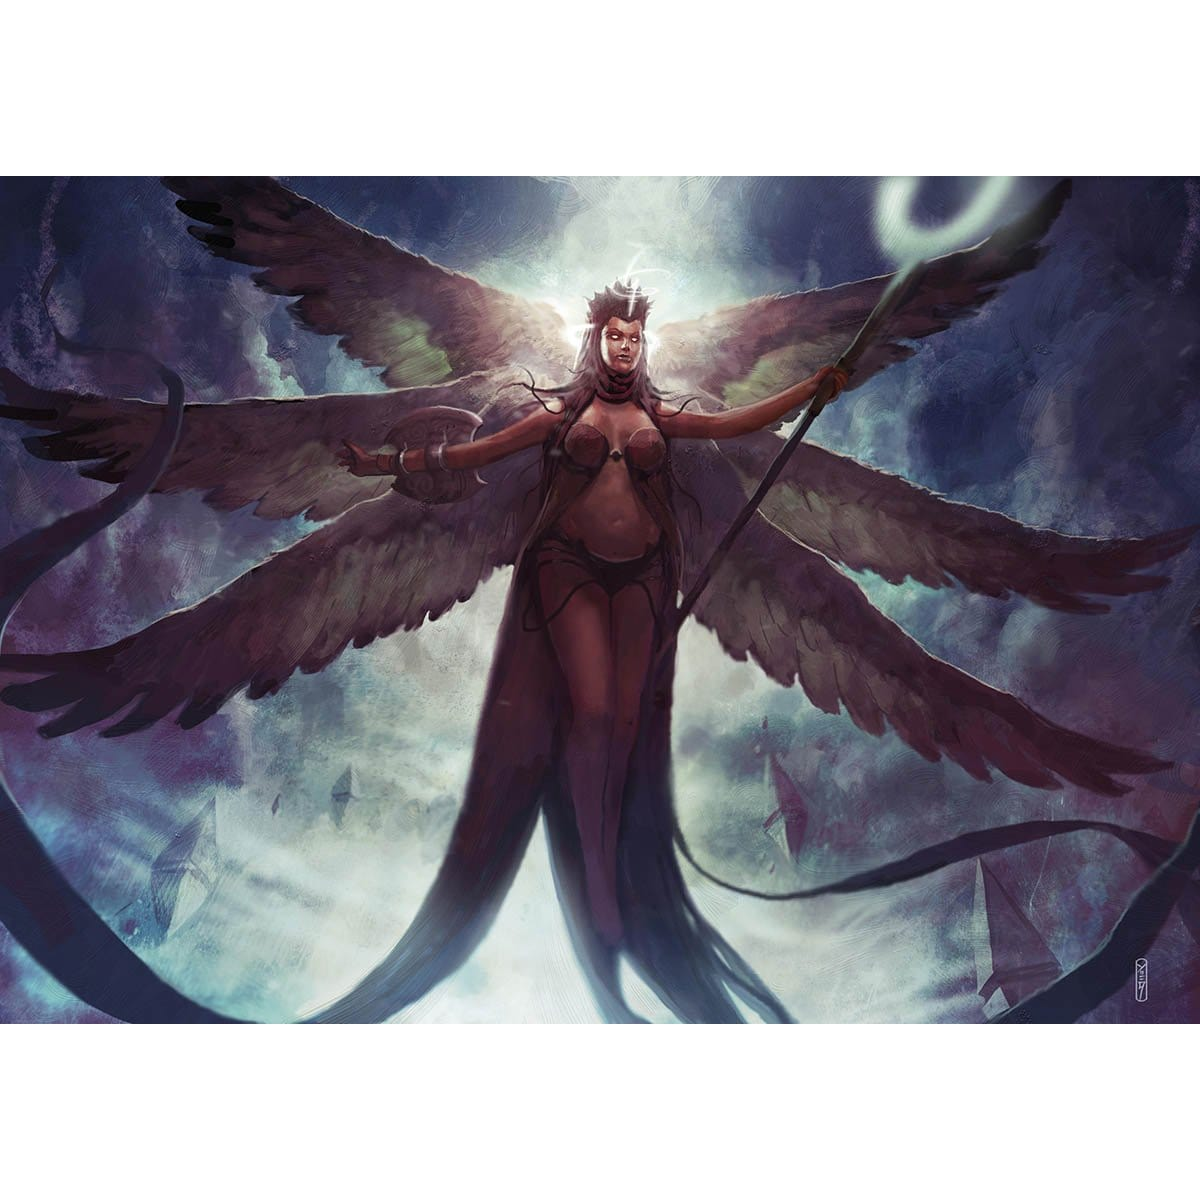 Deathless Angel Print - Print - Original Magic Art - Accessories for Magic the Gathering and other card games